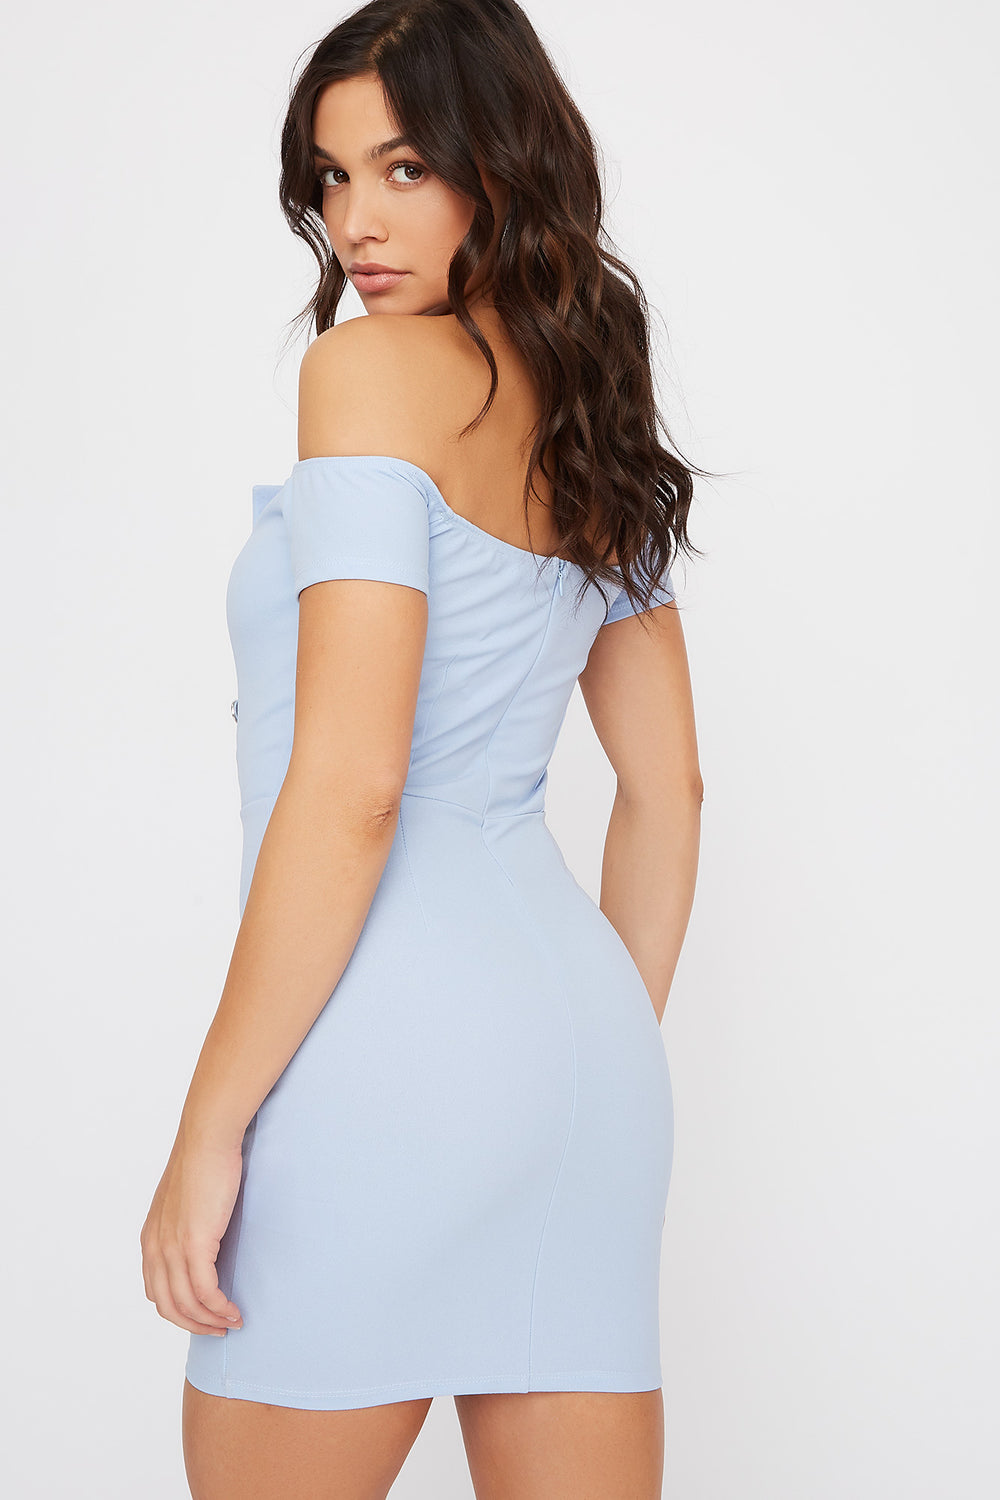 Off The Shoulder V-Neck Button Mini Dress Light Blue